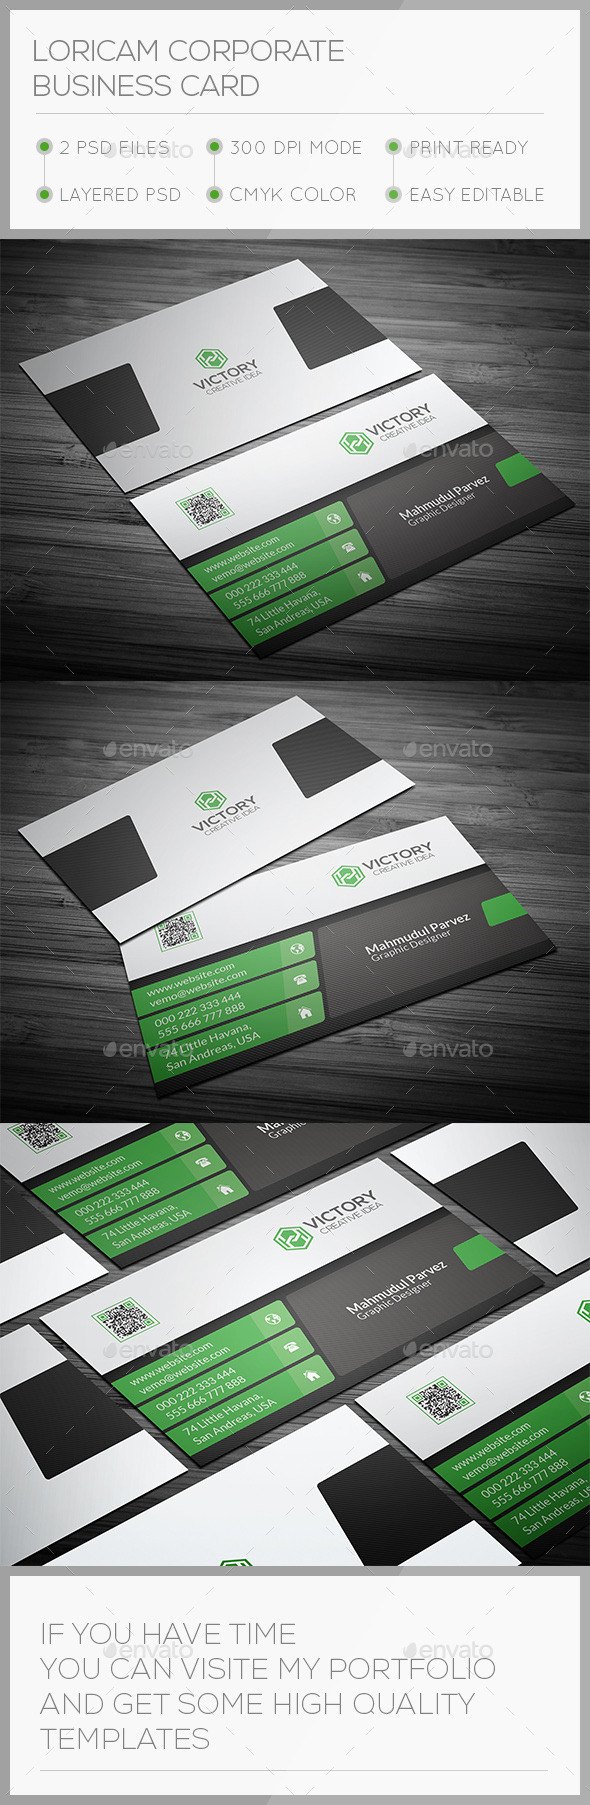 Loricam Corporate Business Card - Corporate Business Cards